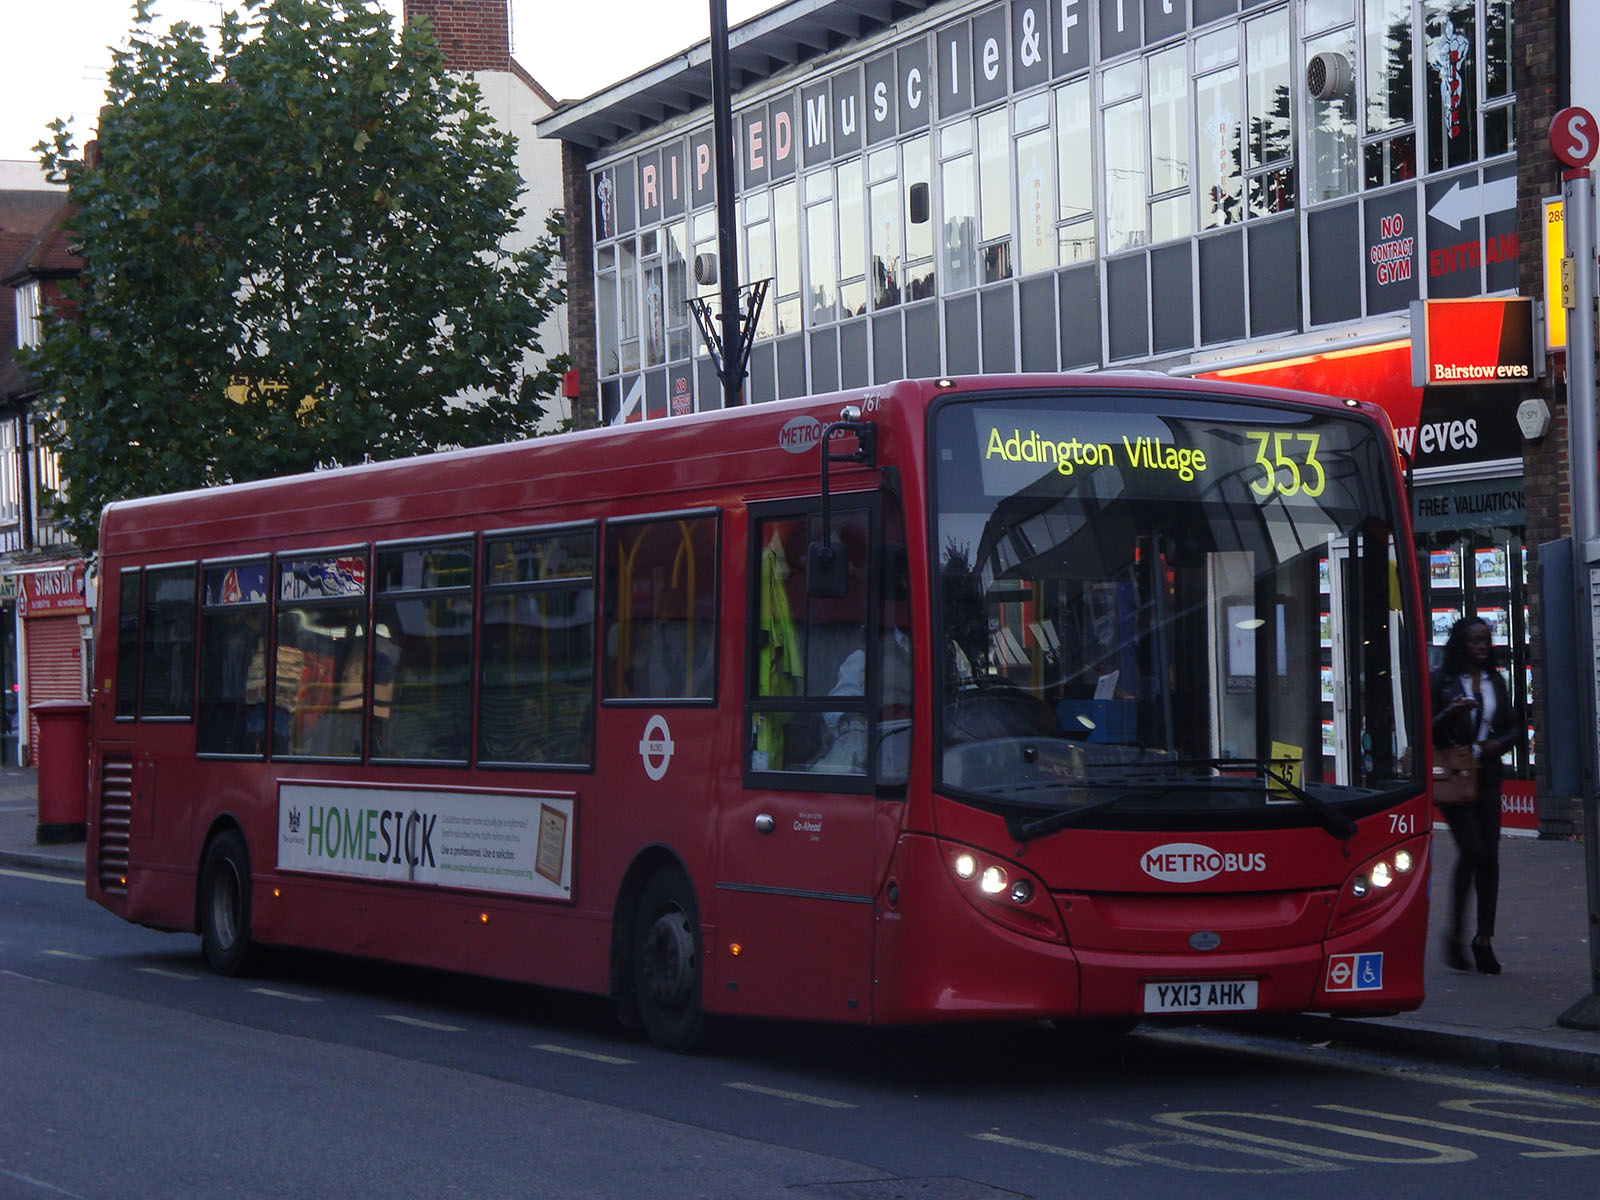 Metrobus London General 761 on Route 353, Orpington.